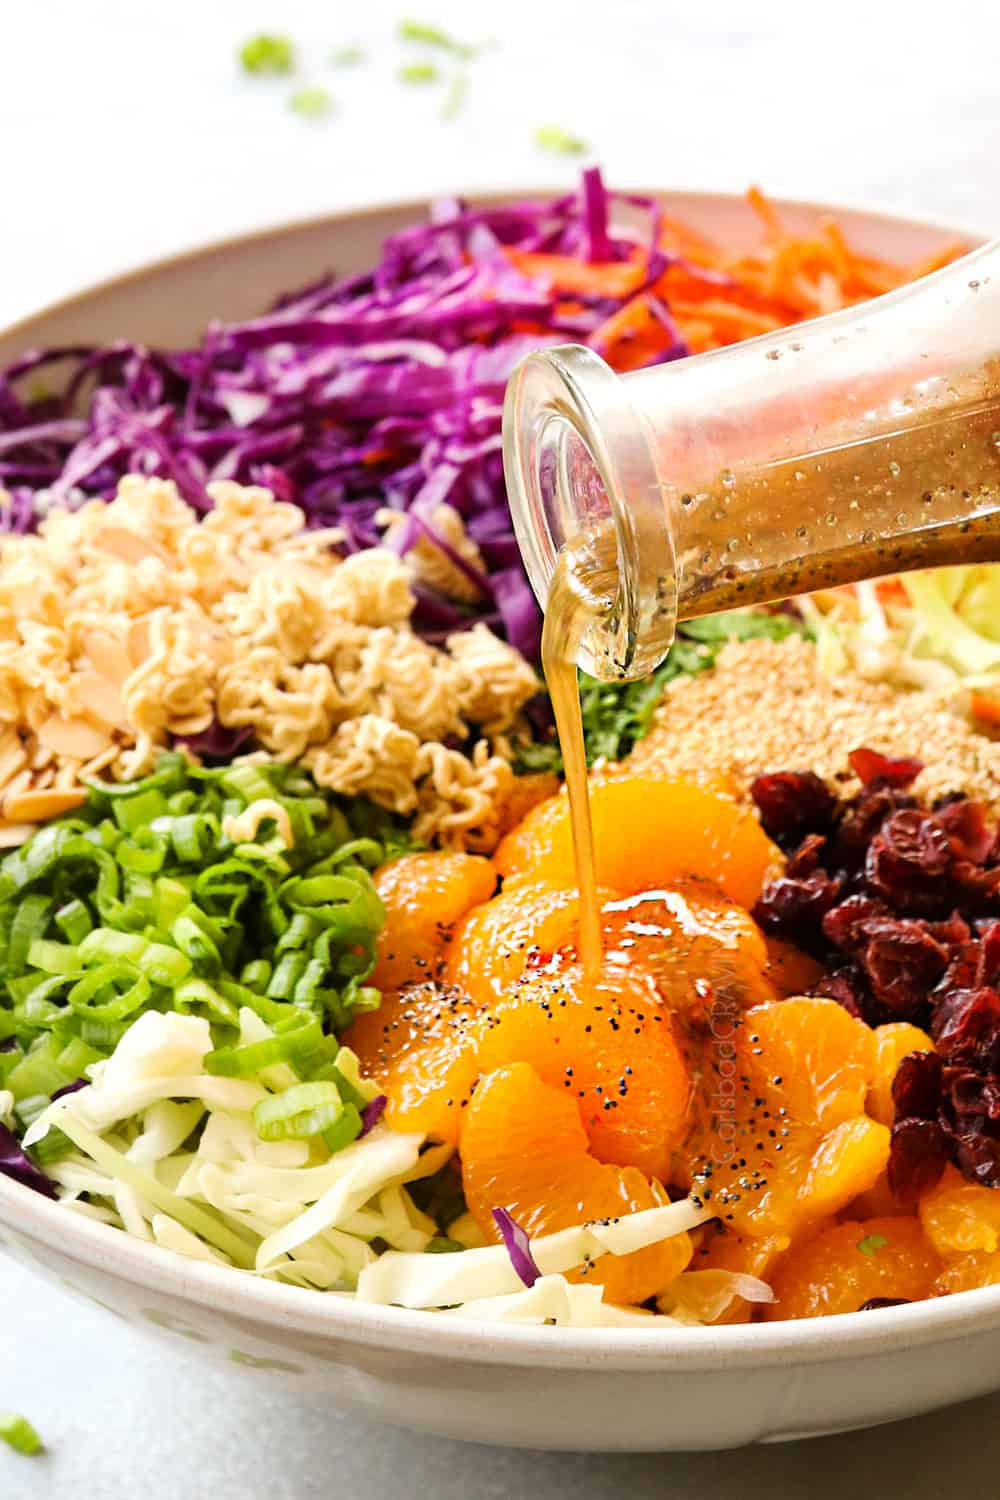 showing how to make Ramen Noodle Salad recipe by pouring salad dressing over the salad